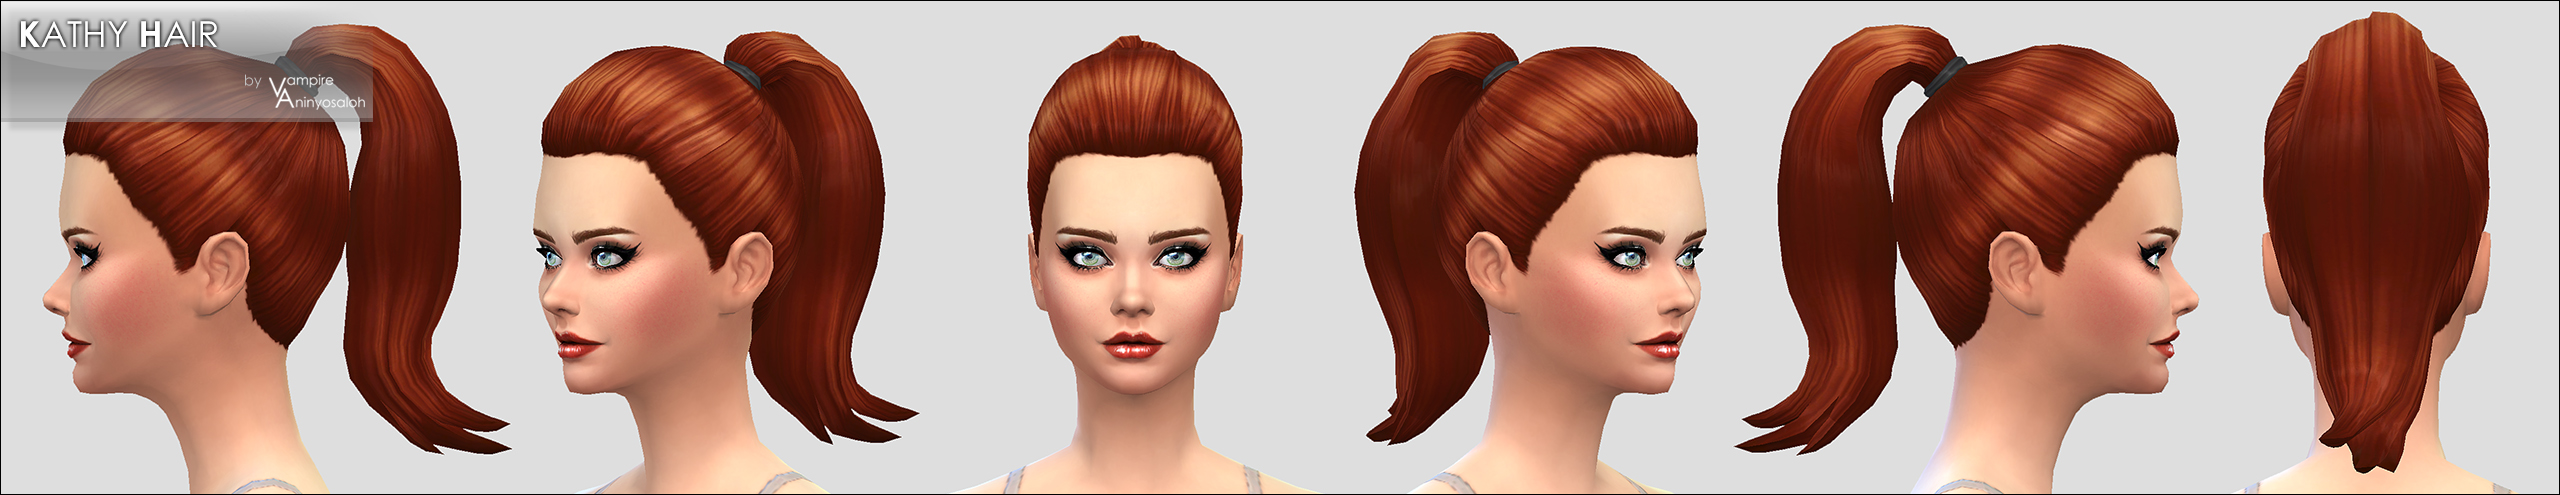 Kathy Hair -NEW MESH- by Vampire_aninyosaloh